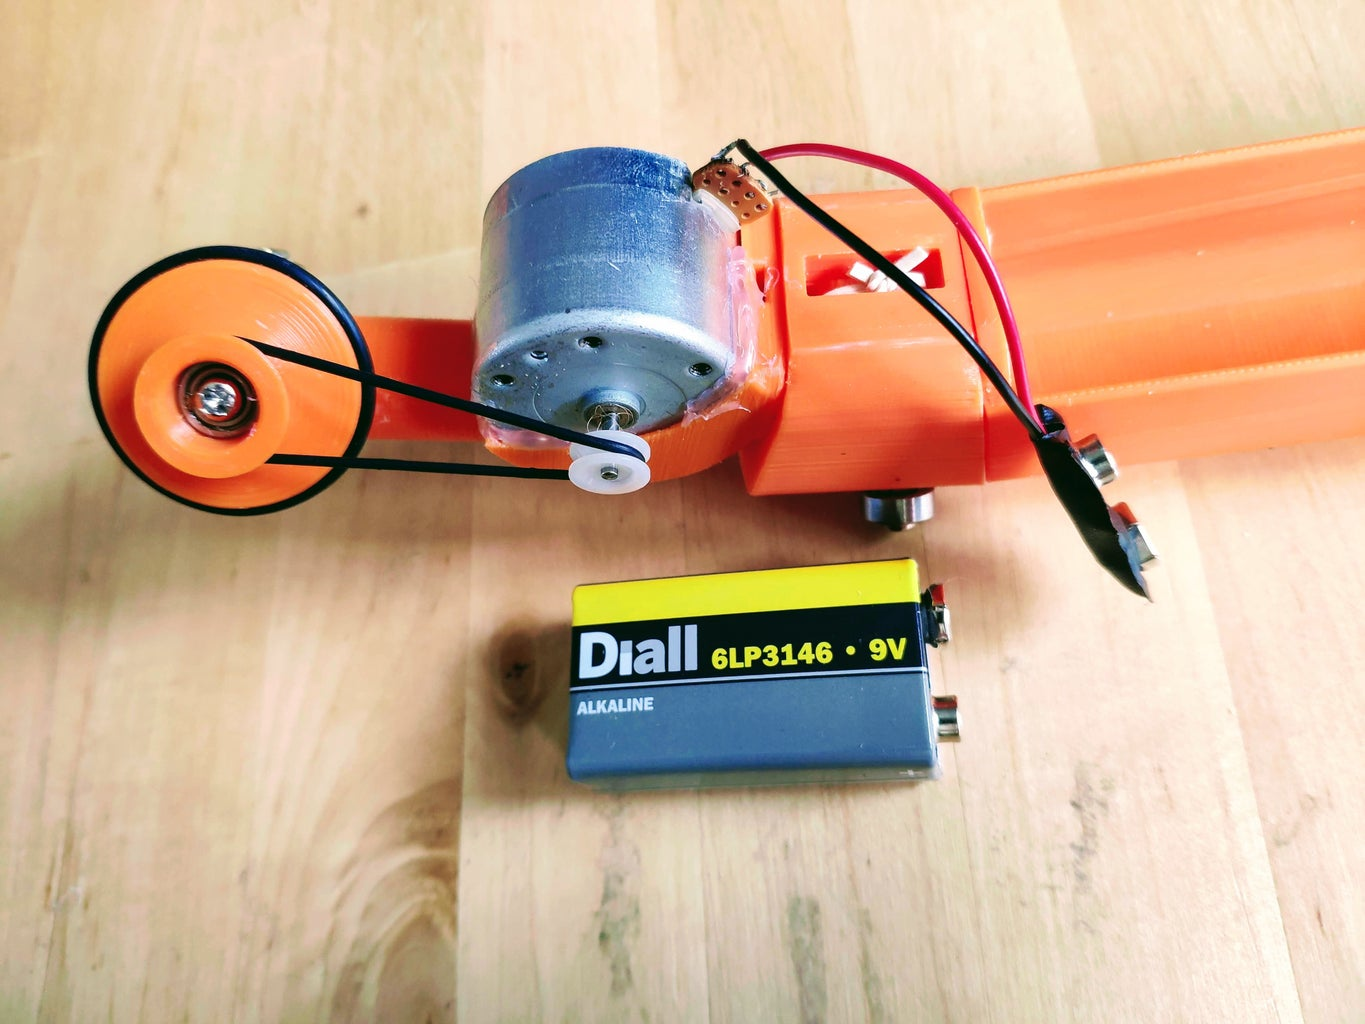 Assemble the Drive System